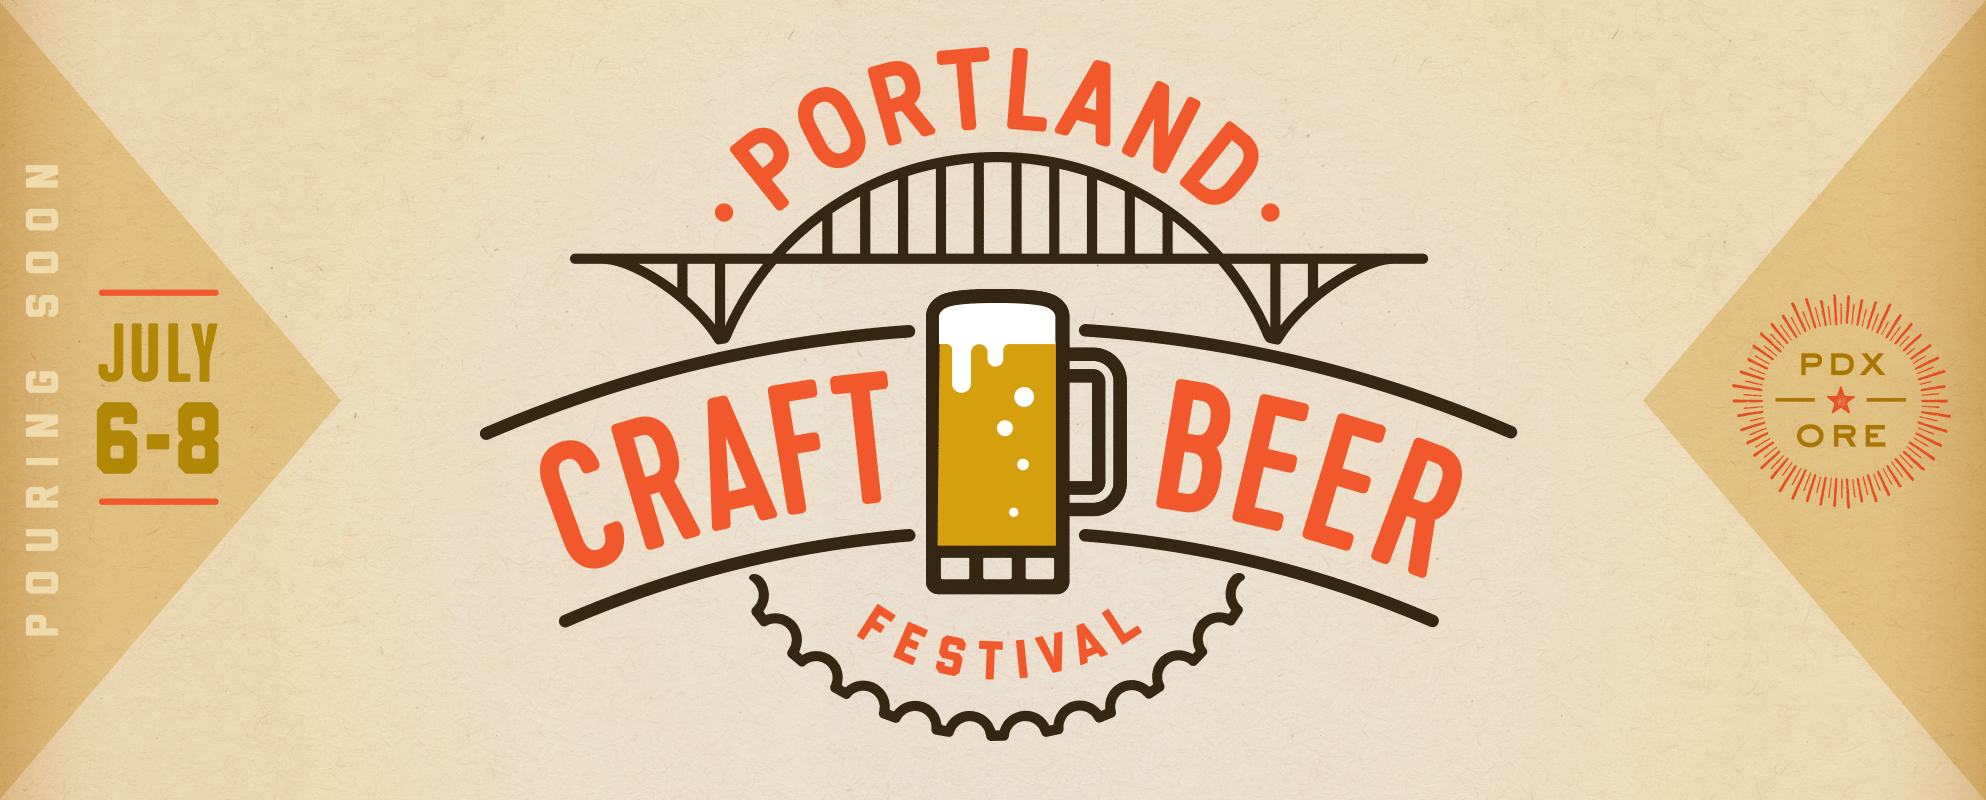 2018 portland craft beer festival returns july 6 8 2018